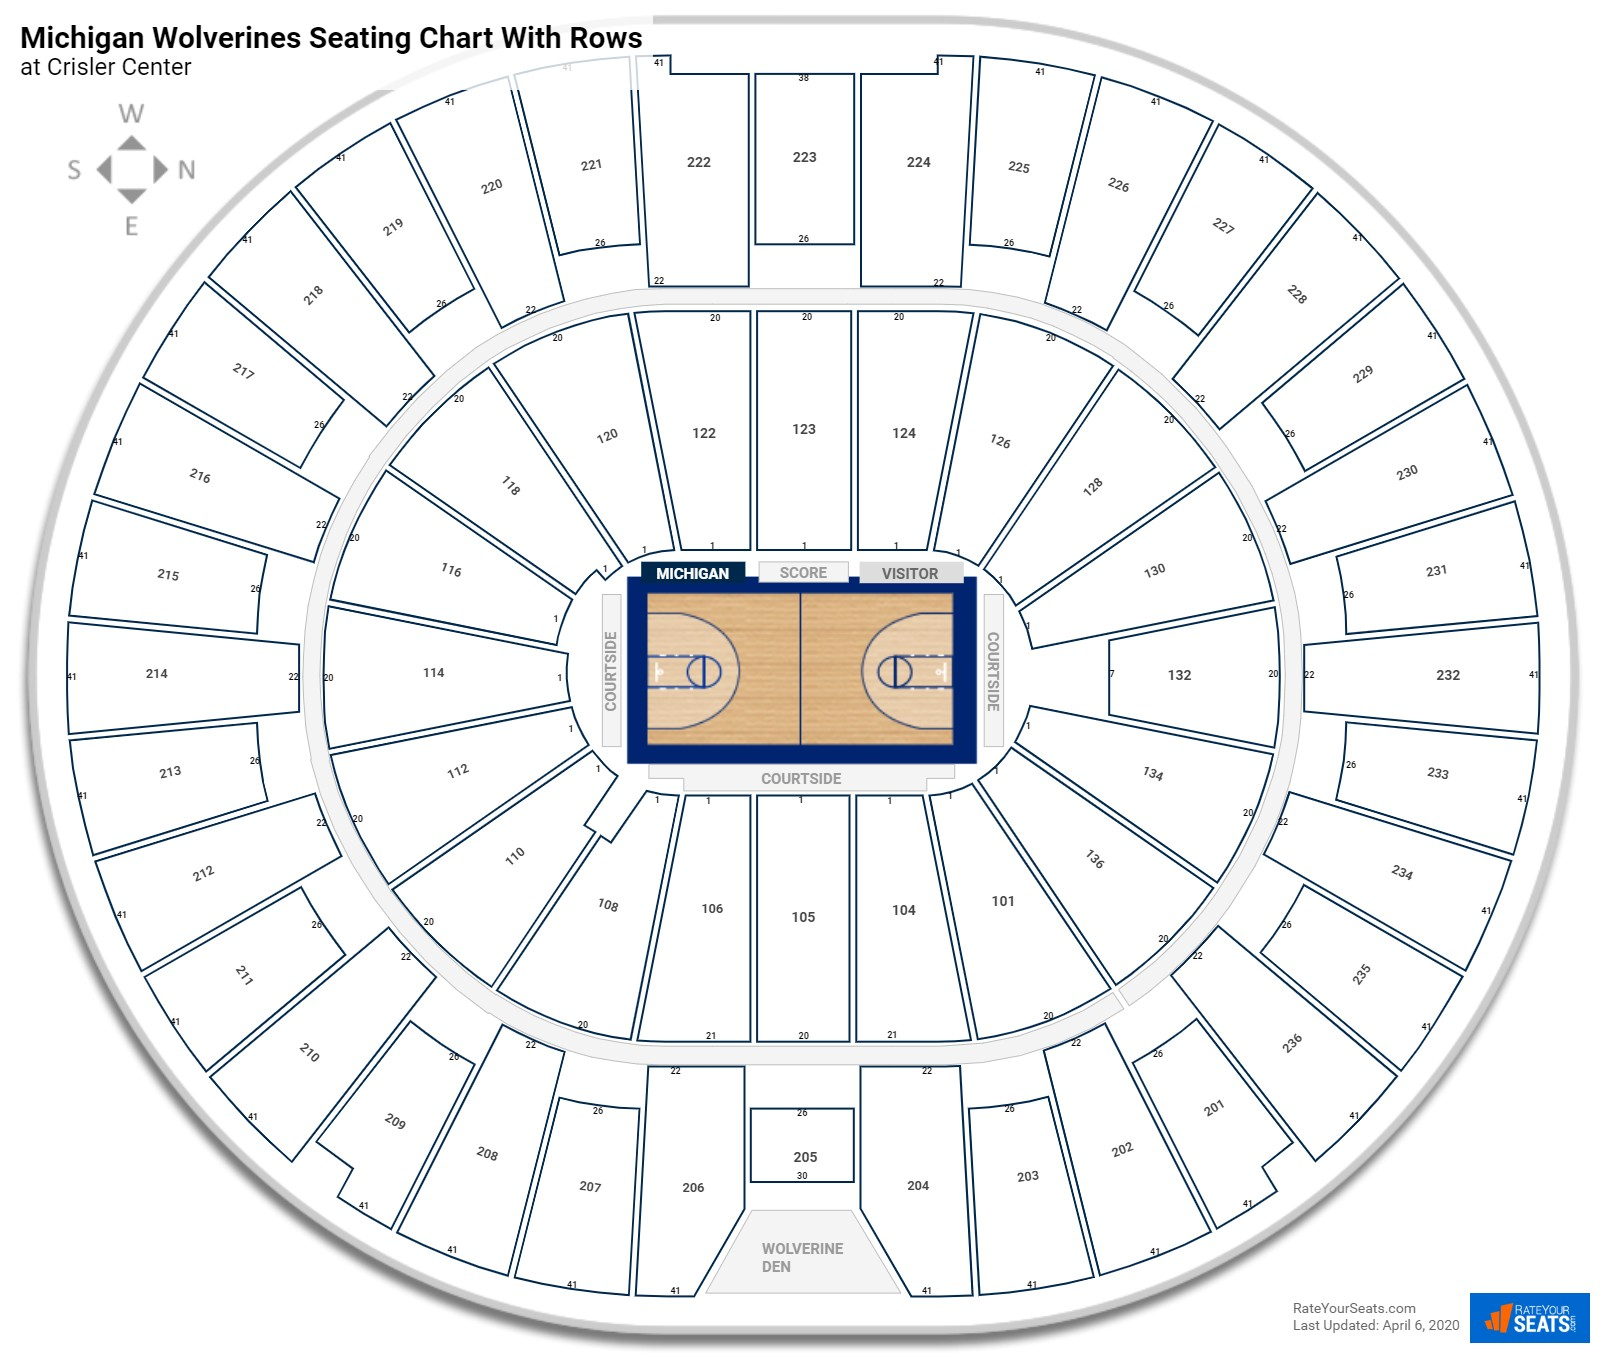 Crisler Center seating chart with rows